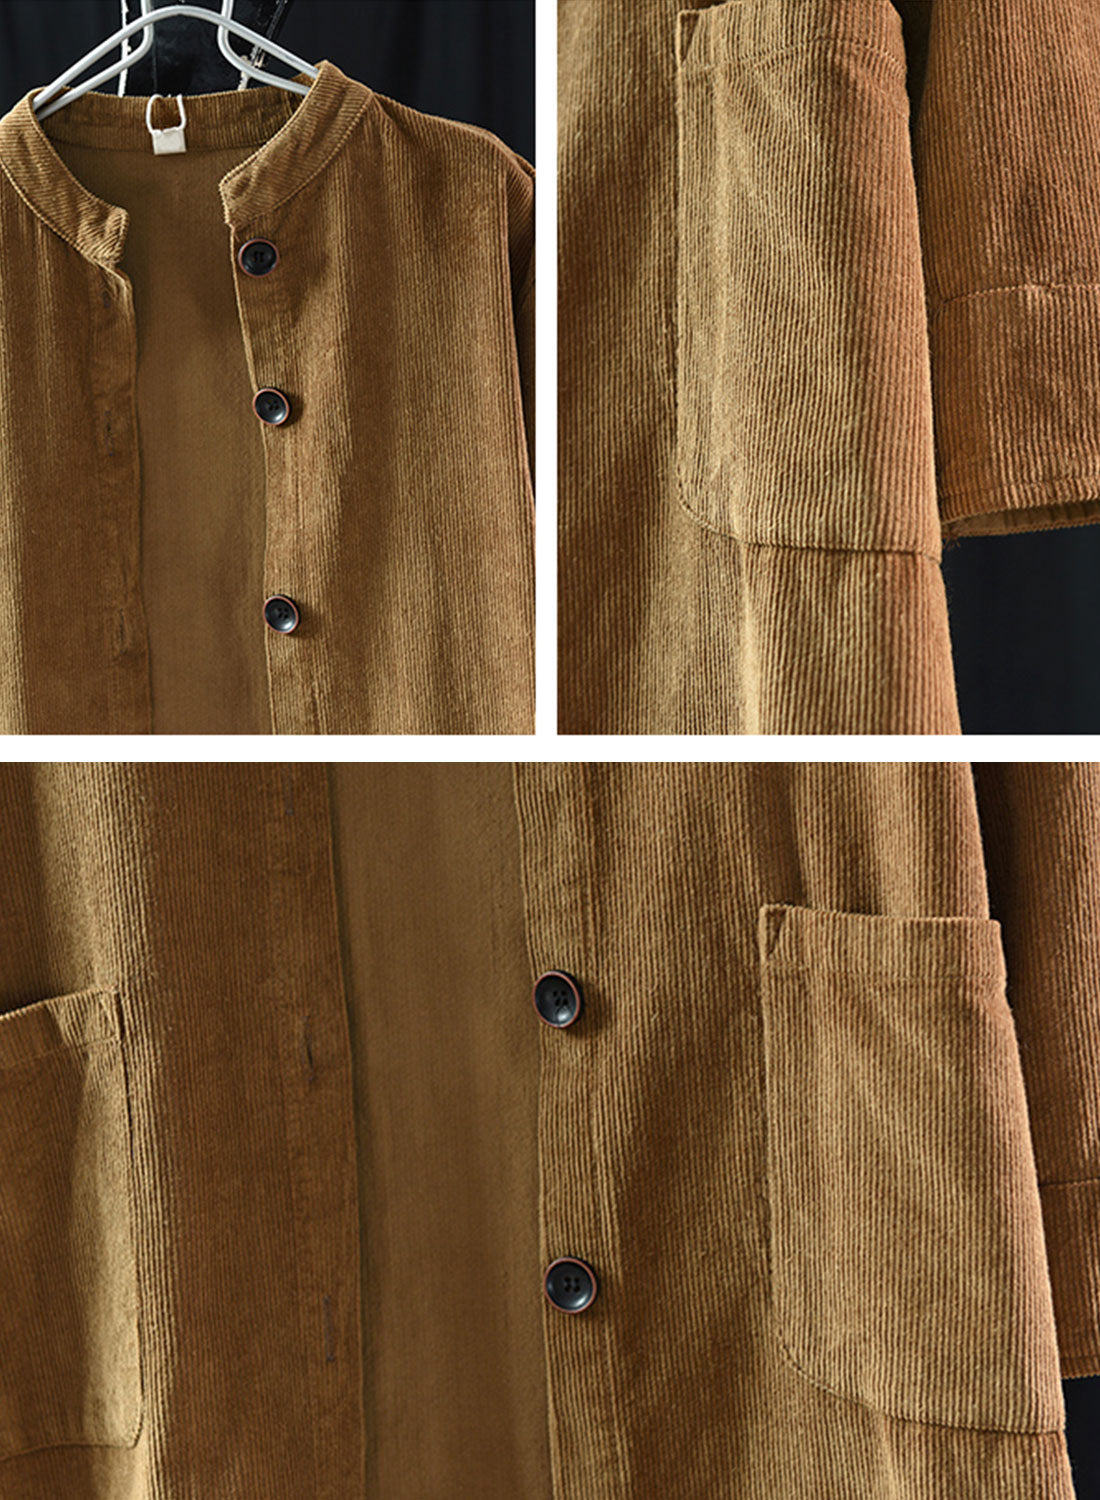 El Salvador Cotton & Linen Cardigan Jacket Details 1